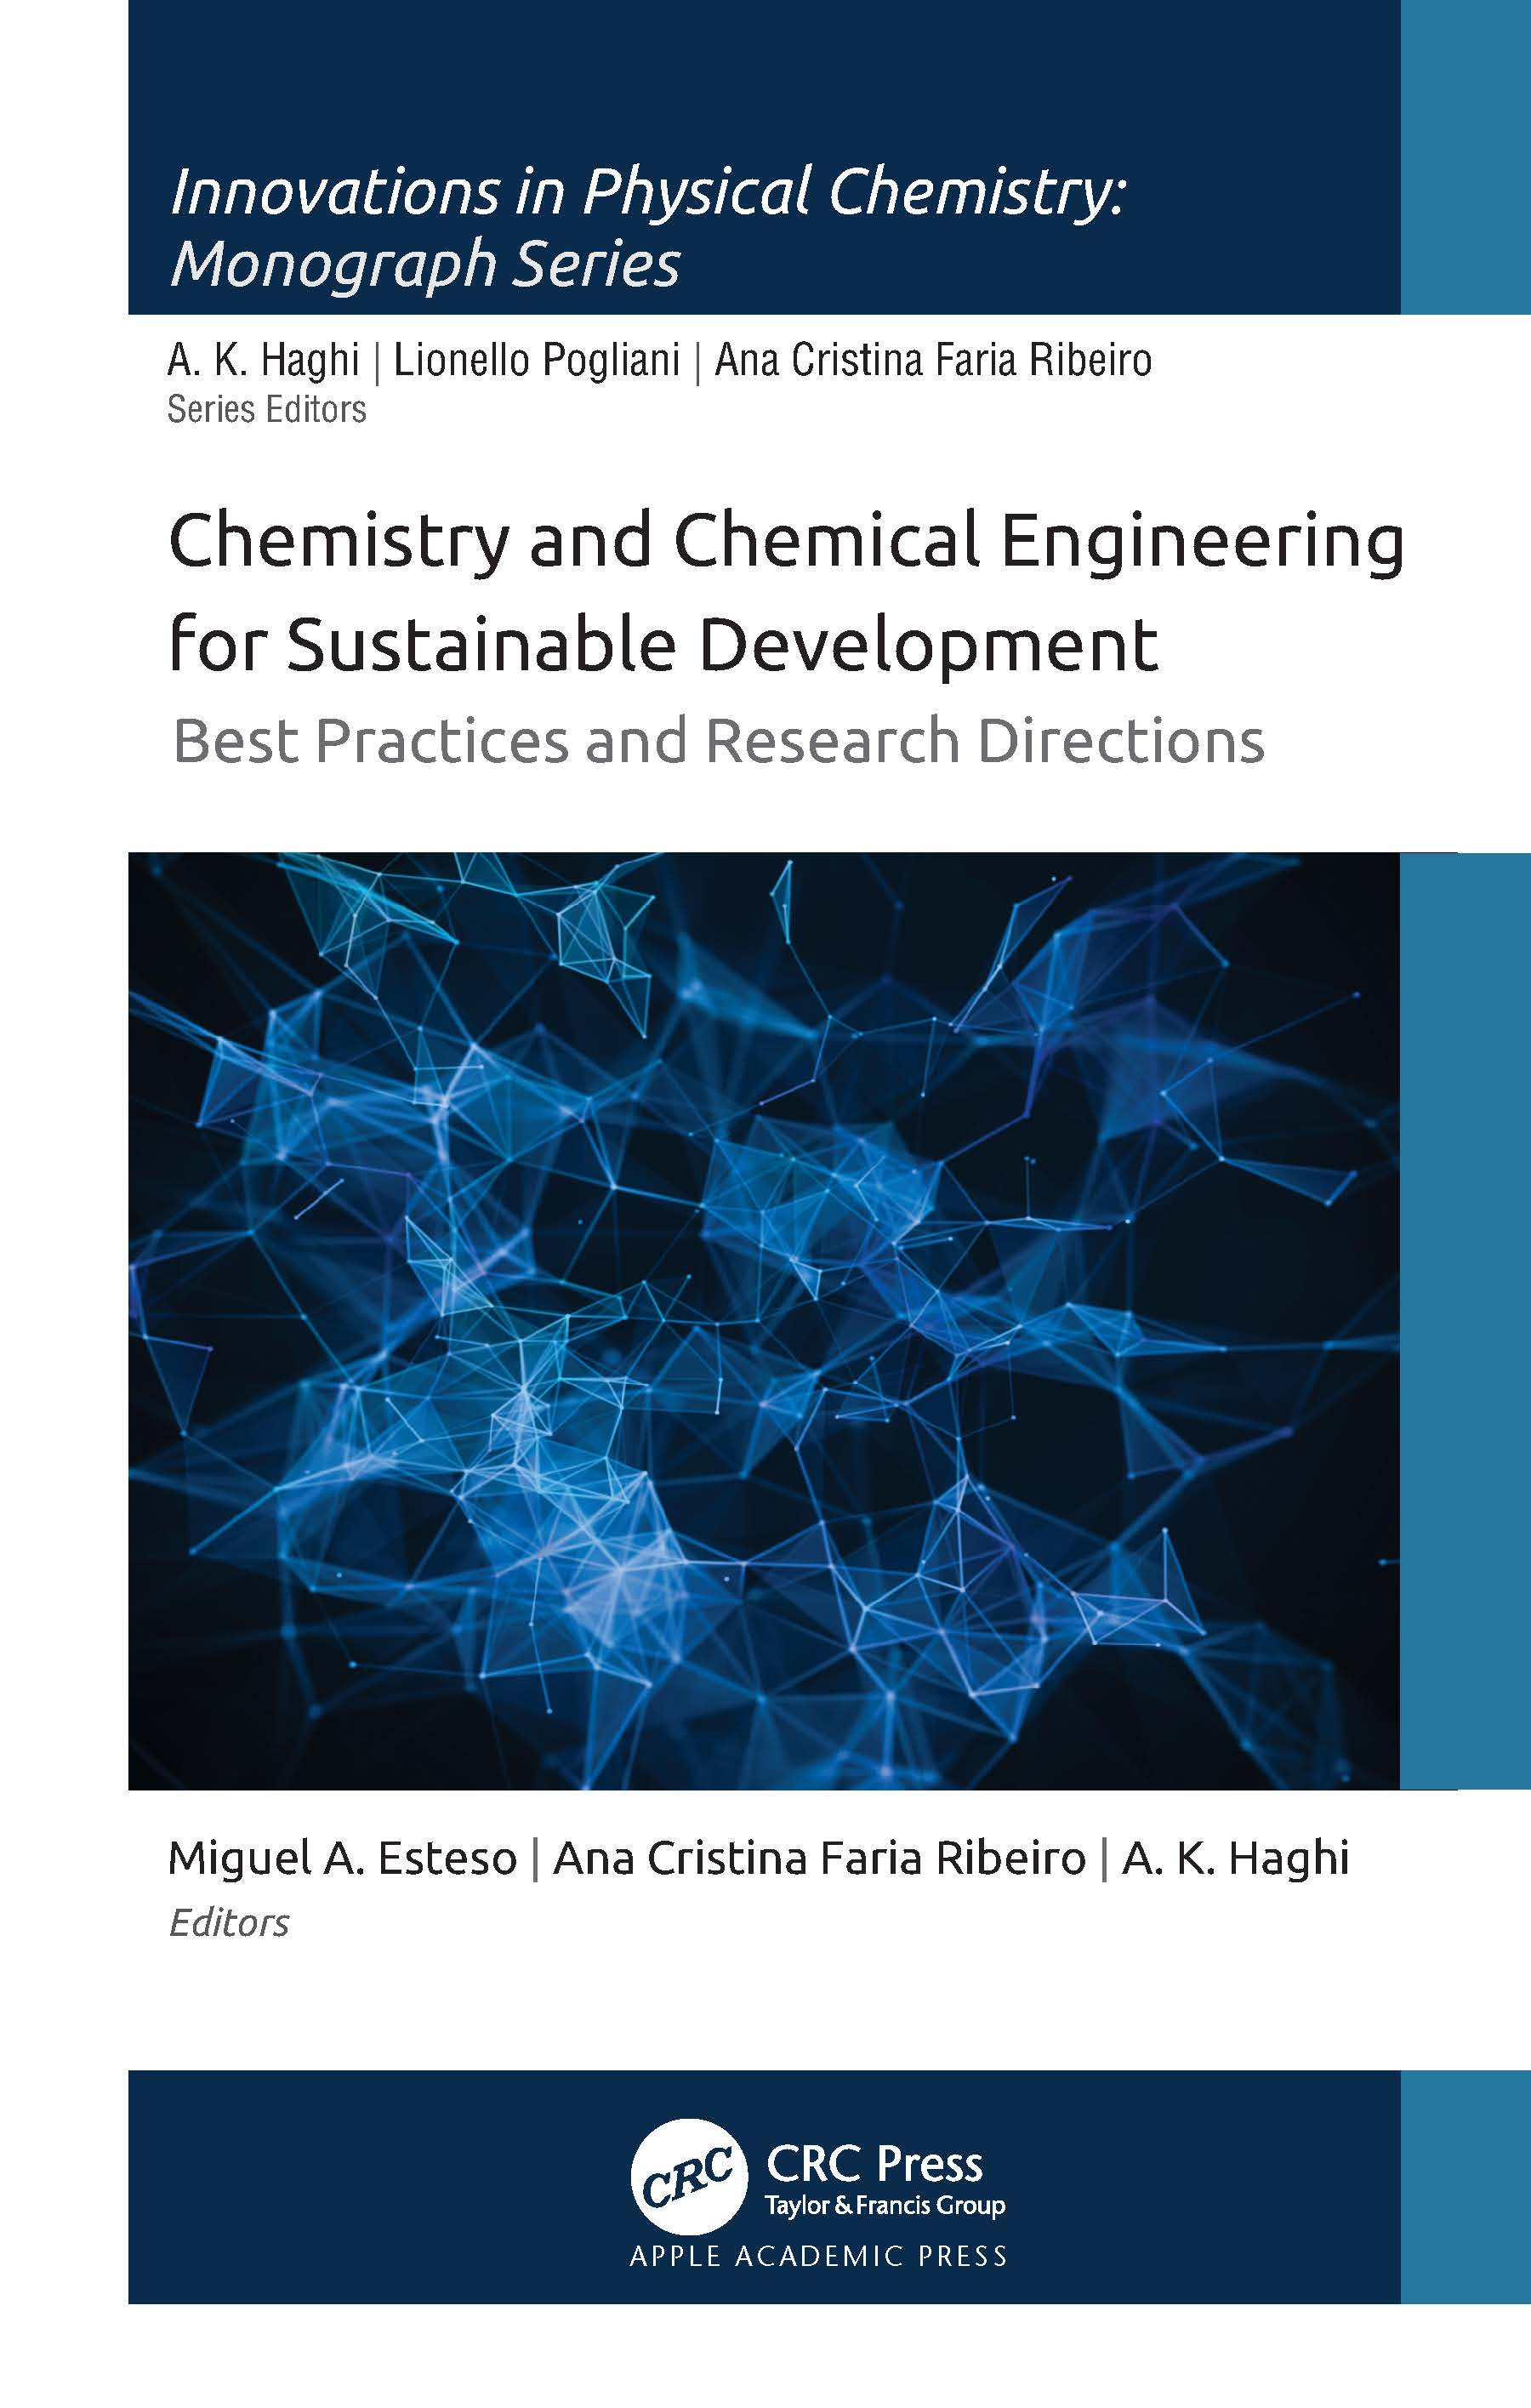 Chemistry and Chemical Engineering for Sustainable Development: Best Practices and Research Directions book cover